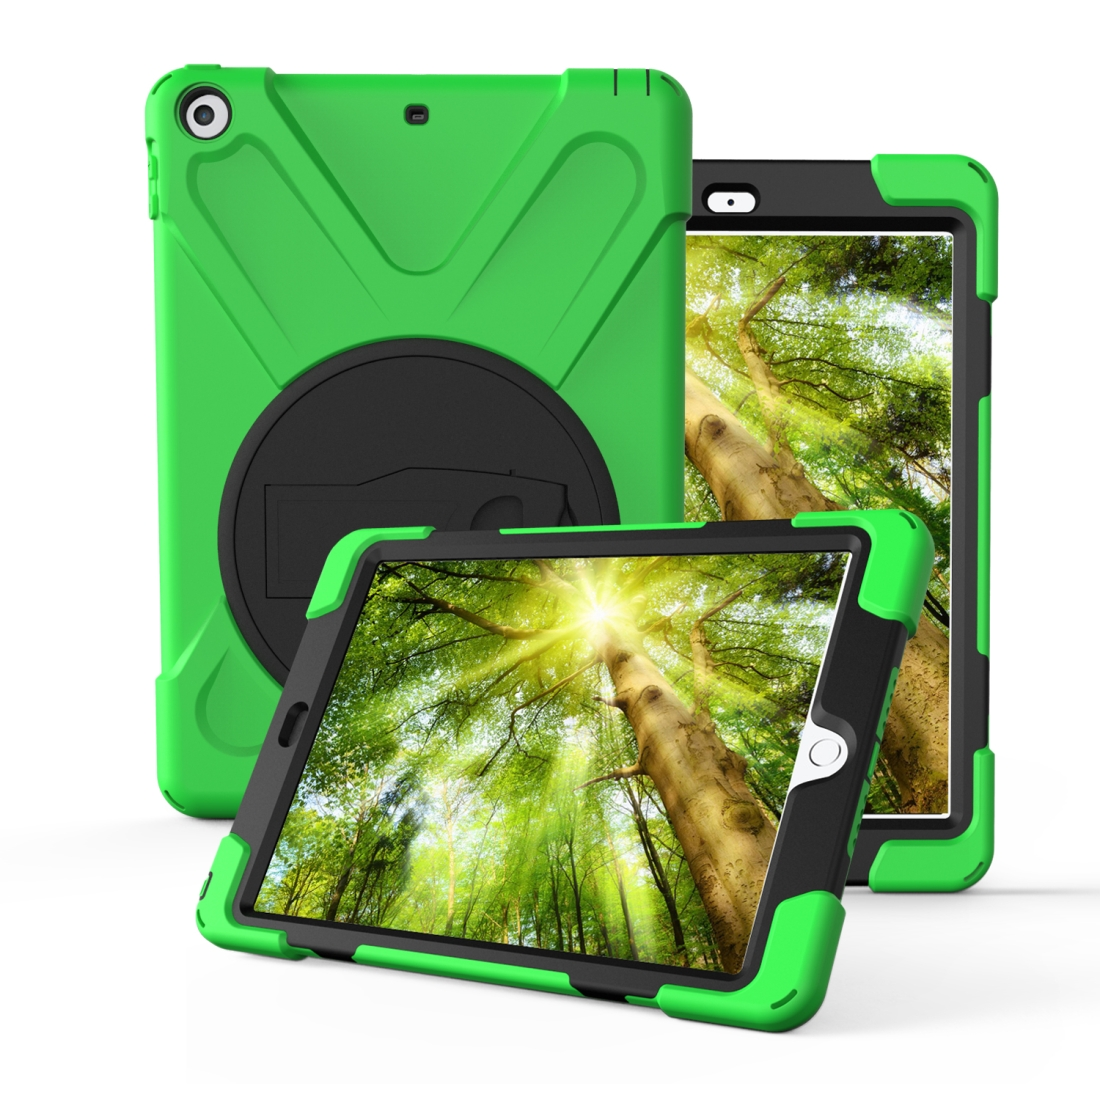 iPad 7th Generation Case (10.2 Inch) With A Protective Rotatable Design And Hand Strap (Light Green)